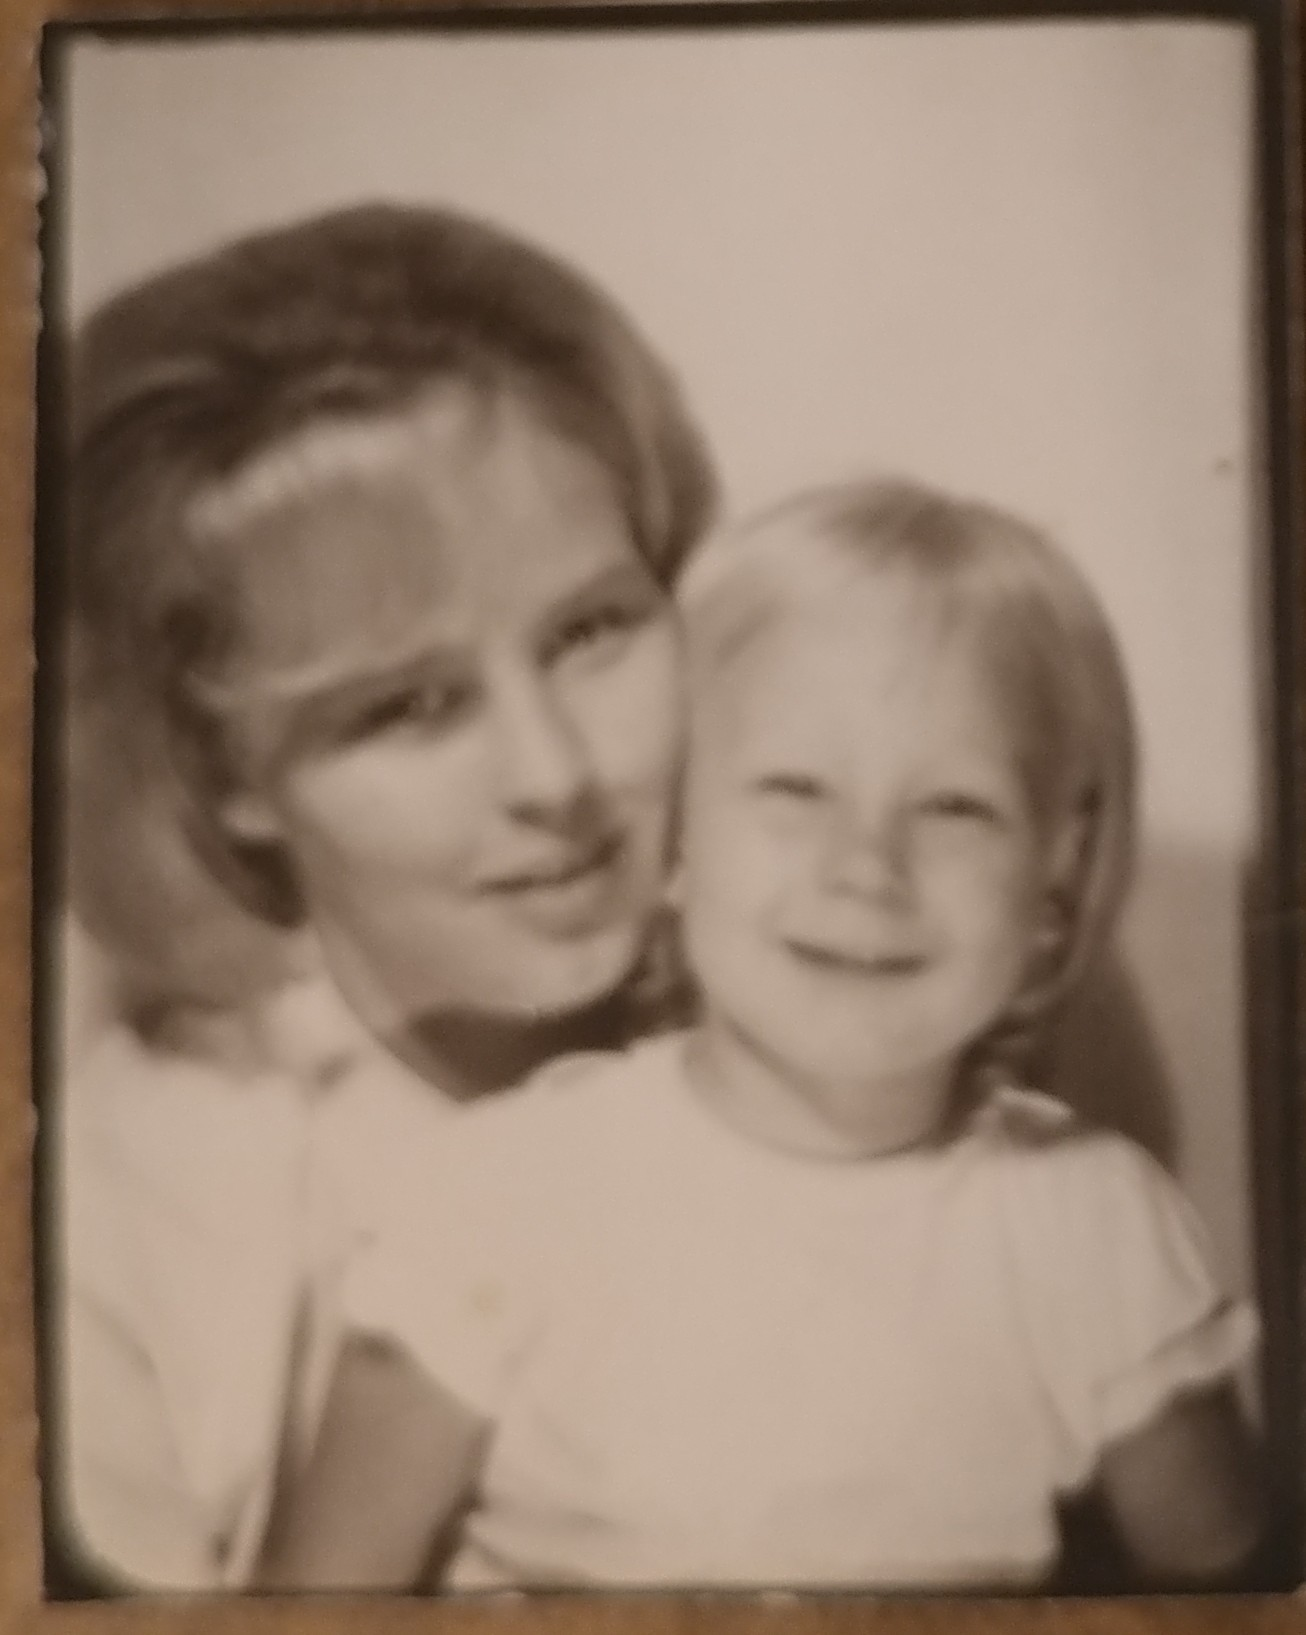 Mother Daughter Picture B&W